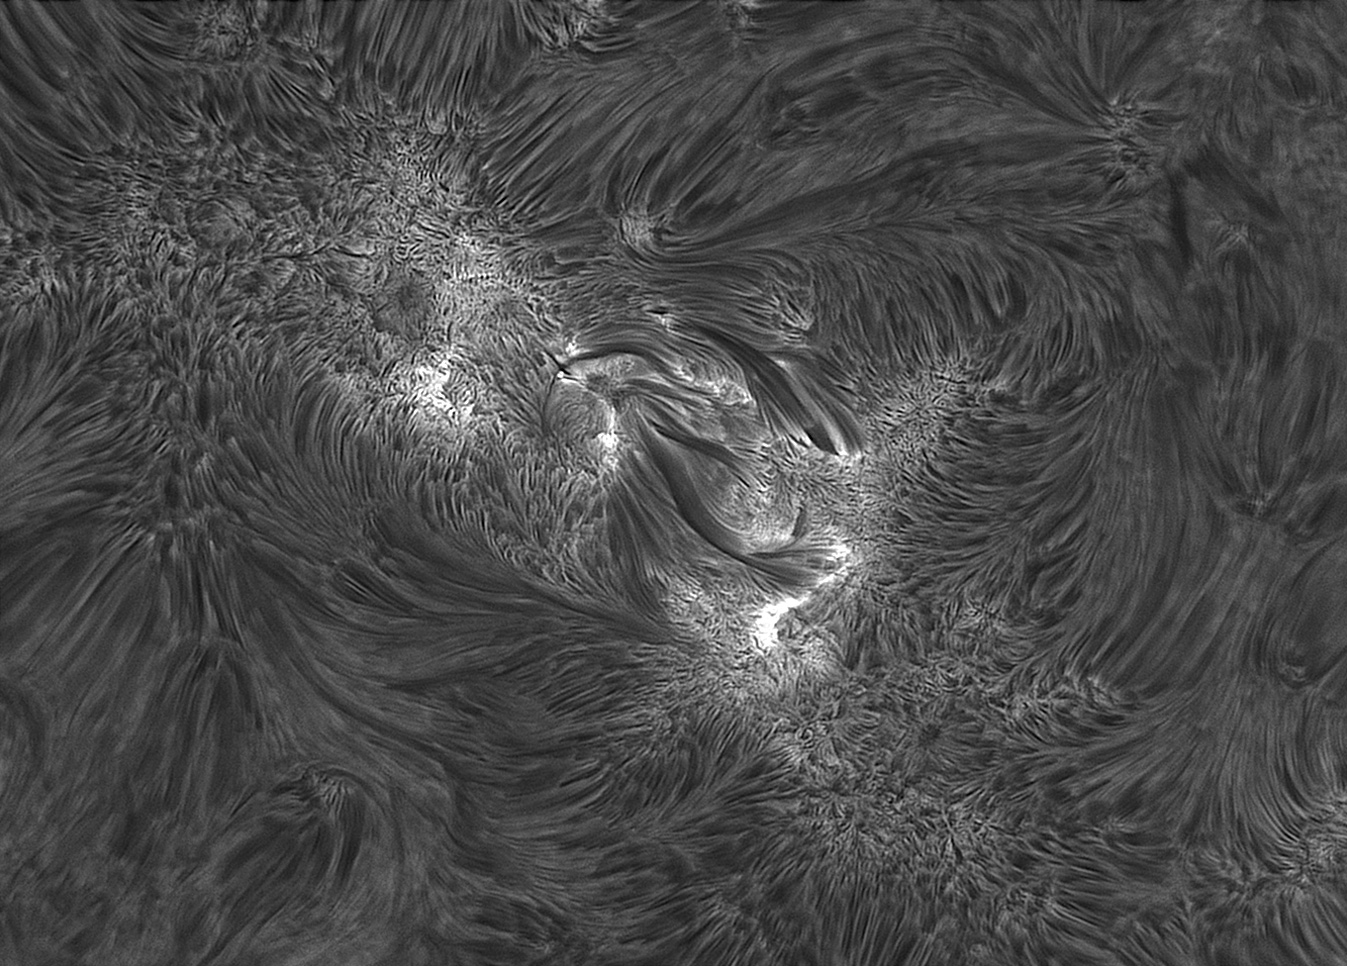 AR12712-May-31-2018-UT06h32m-C11-ARIES-295mm-DERF-0,2A-etalon-IMX174.jpg